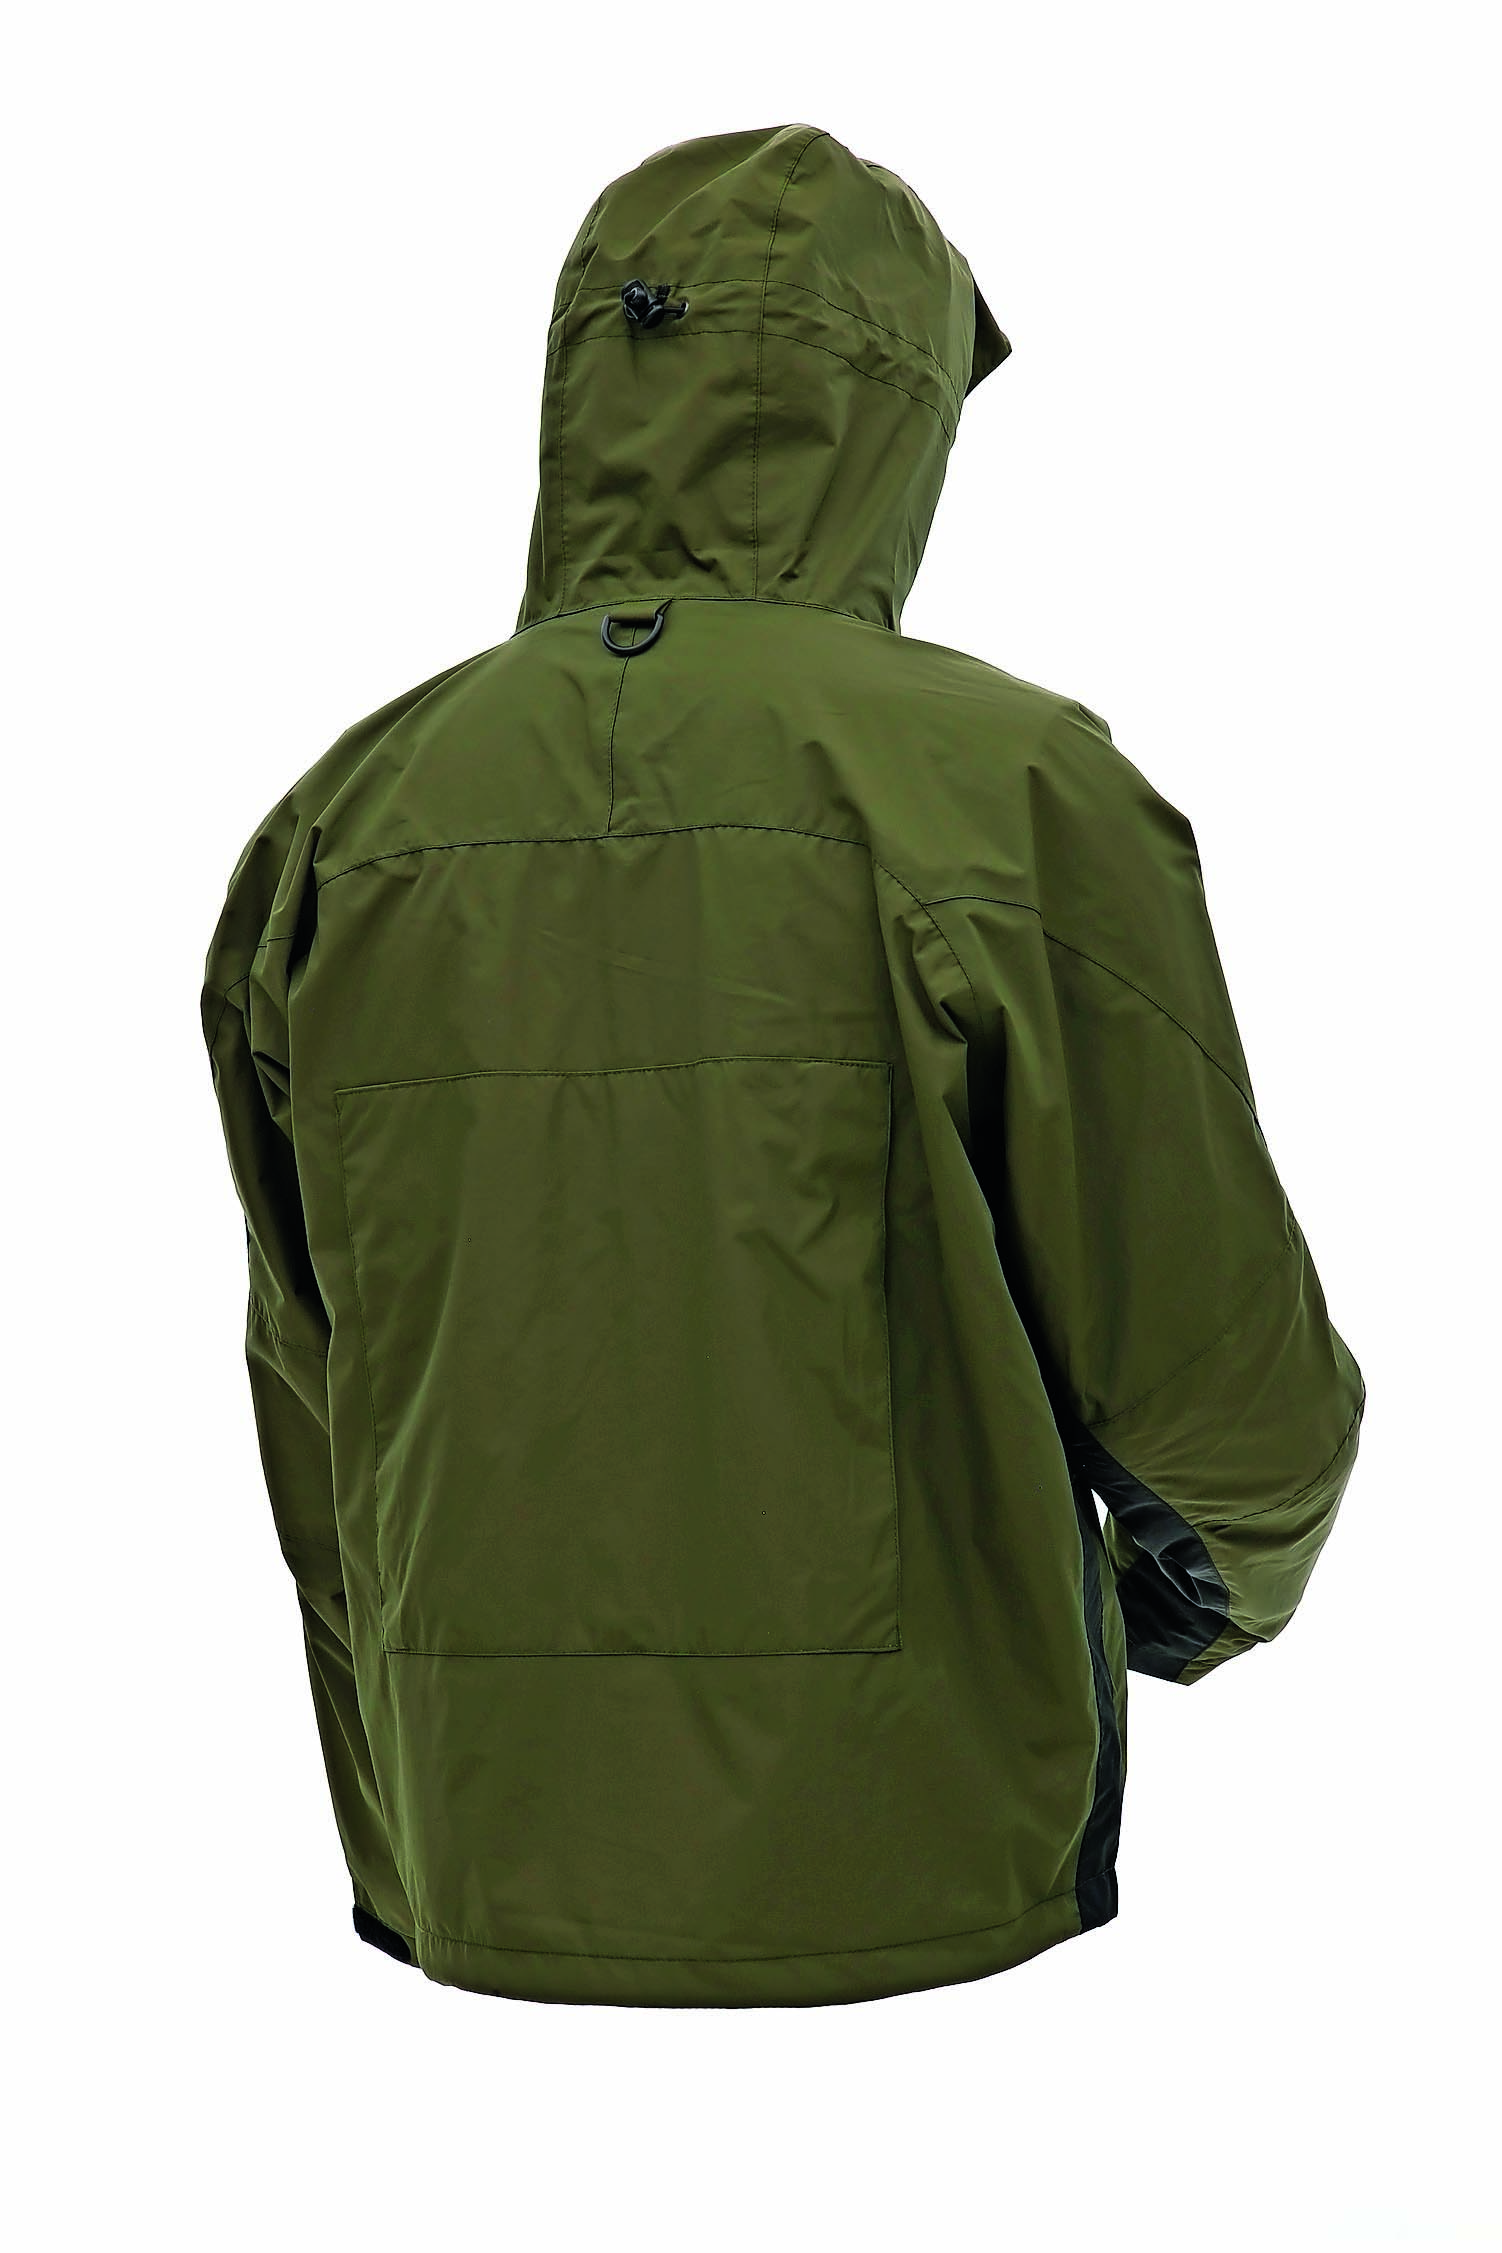 DAM HYDROFORCE G2 WADING JACKET XXXL